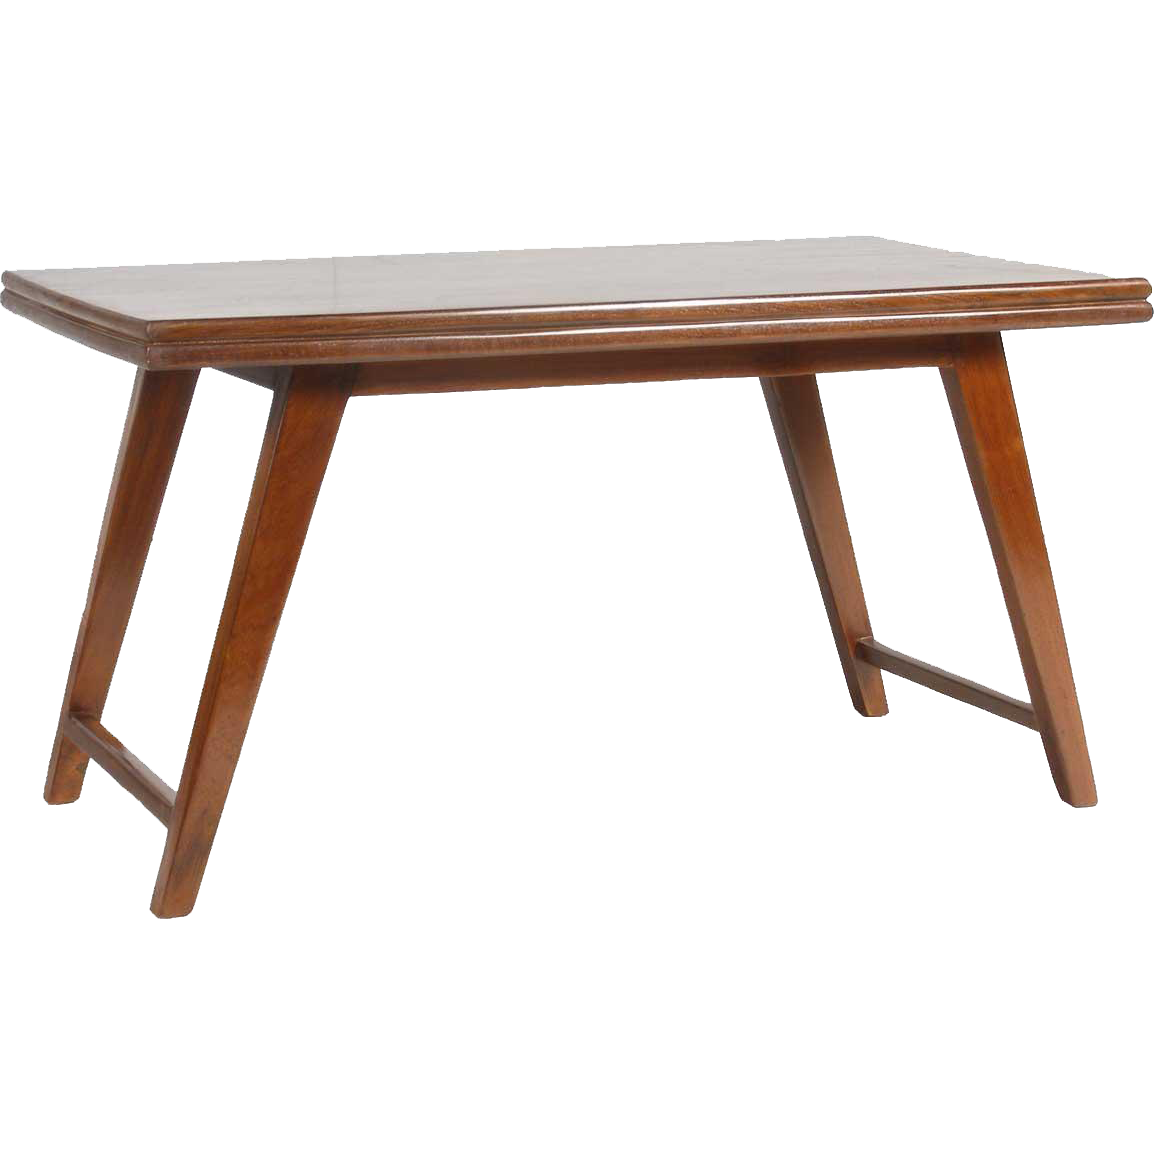 Teak Coffee Table India: PIERRE JEANNERET Teak Coffee/Cocktail Table From